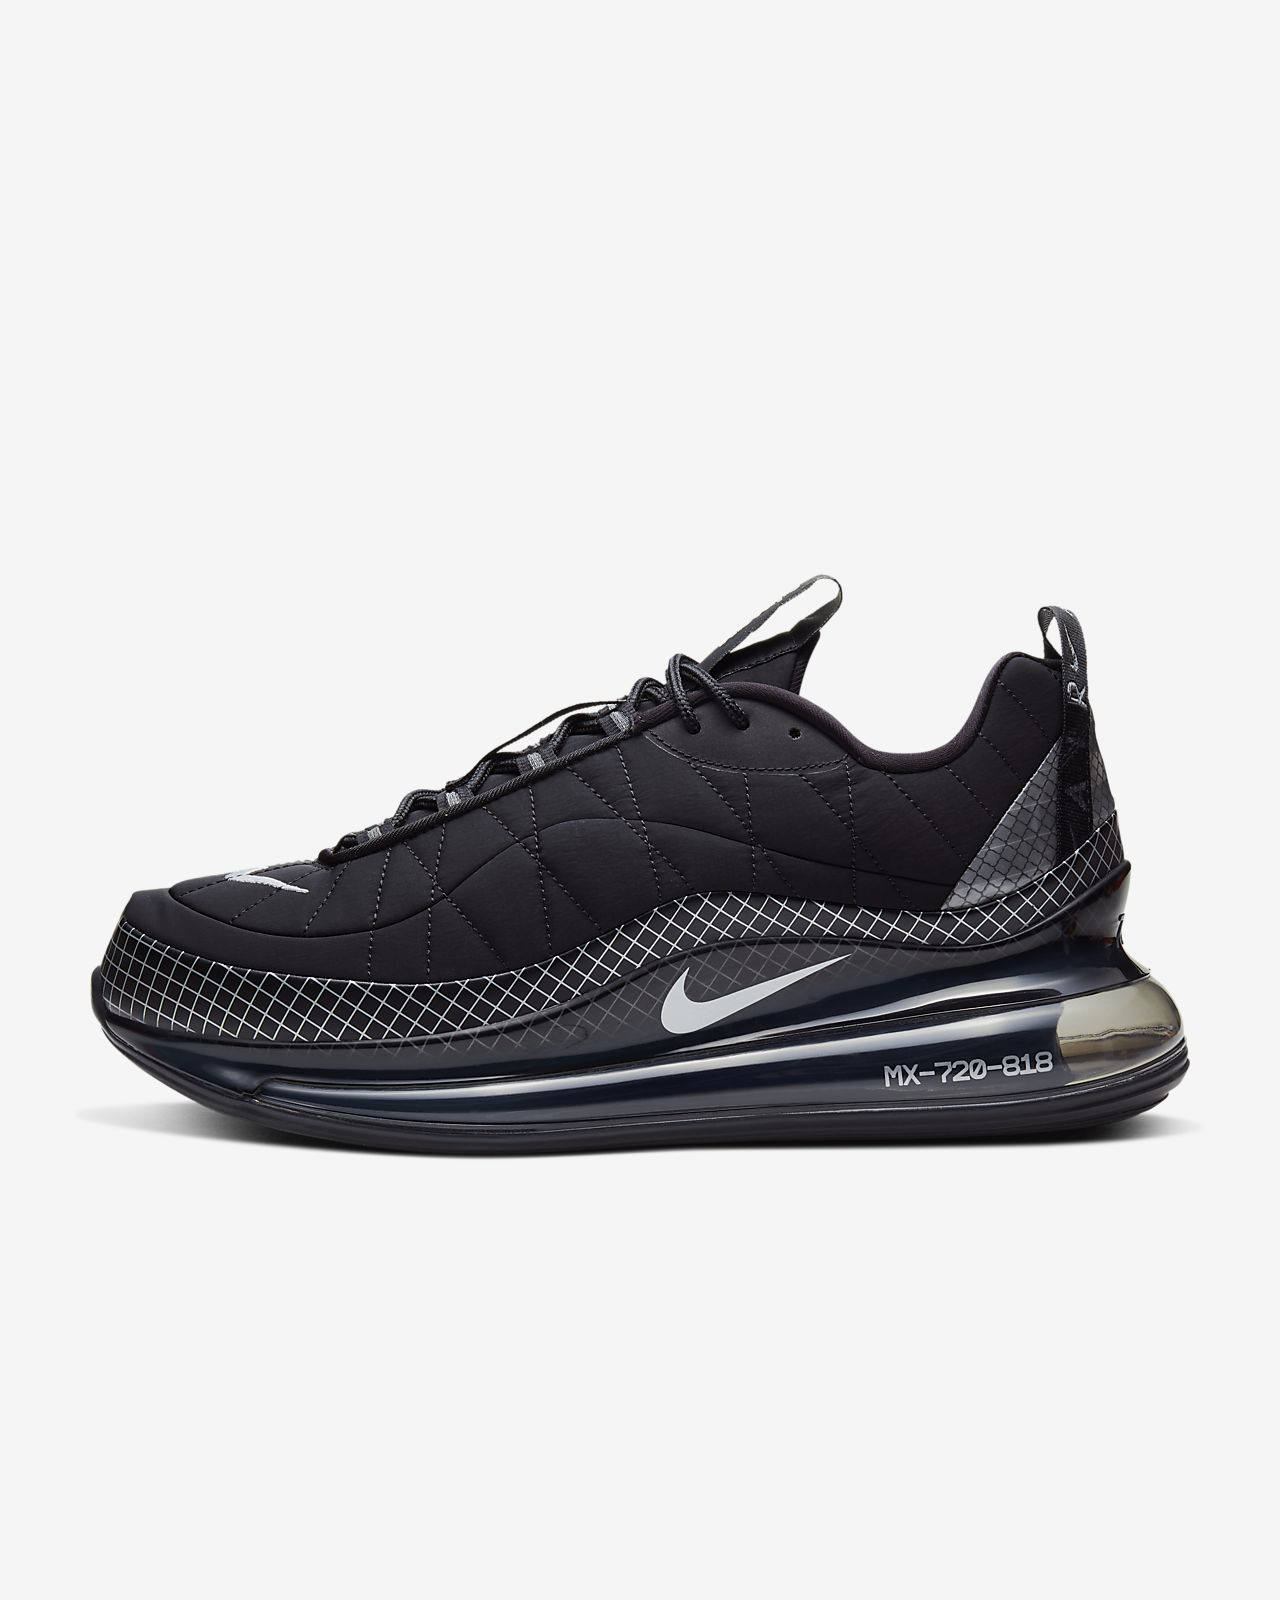 Chaussure Nike MX 720 818 pour Homme